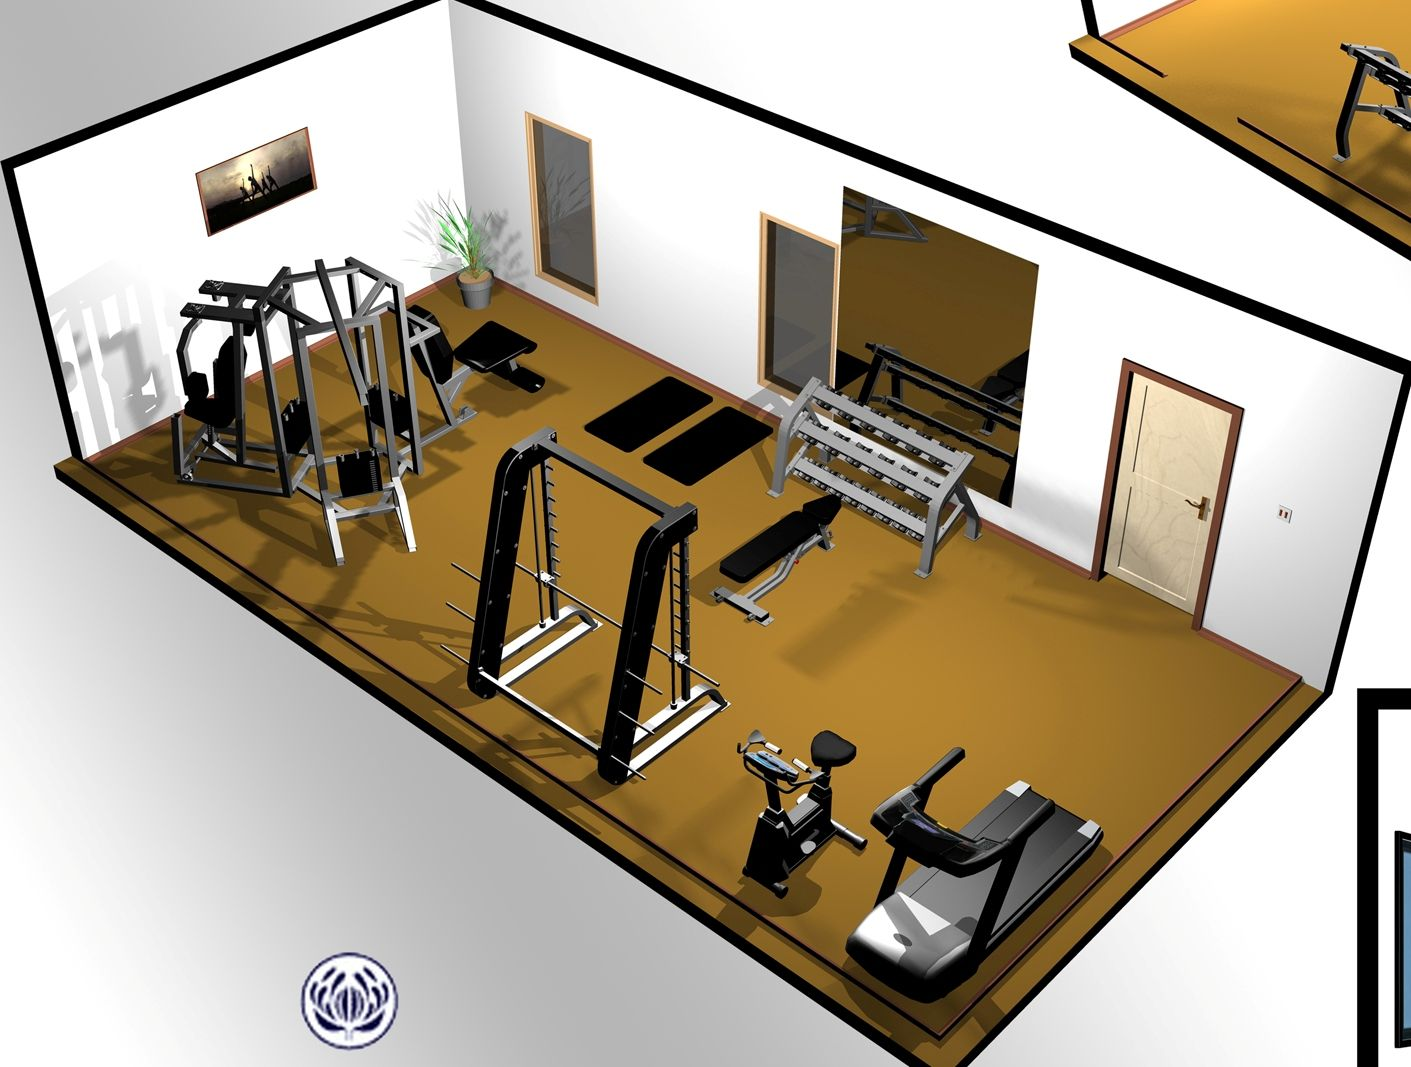 Best Kitchen Gallery: Good Layout With All The Right Equipment Home Gym Pinterest of Home Gym Design Layout  on rachelxblog.com